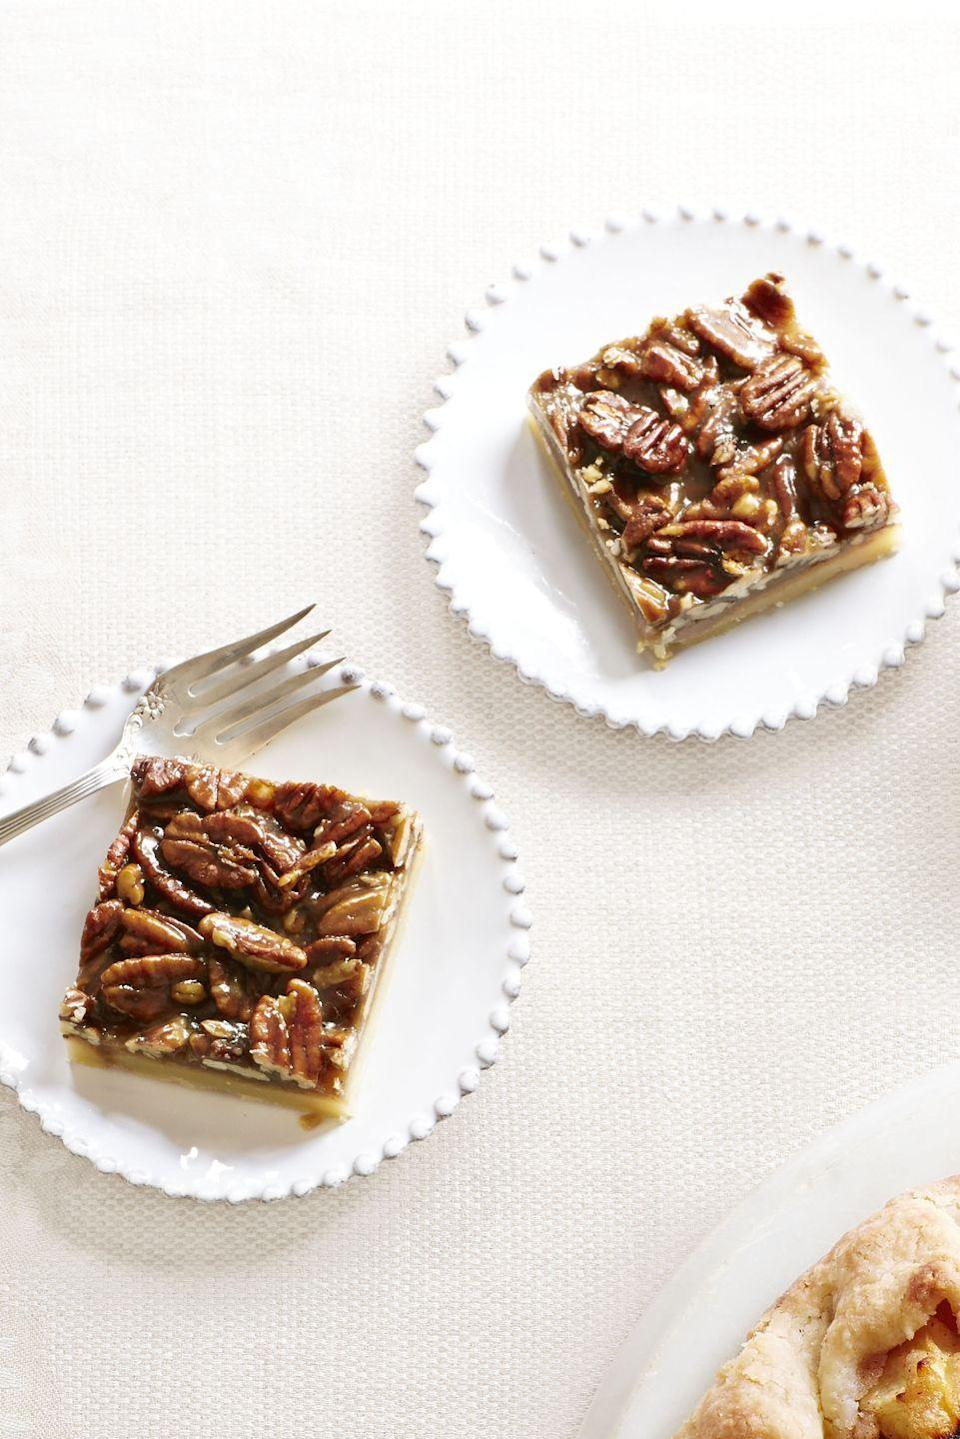 """<p>Pecan pie has a whole new look — but the same quintessential (and delicious) flavor. </p><p><em><a href=""""https://www.goodhousekeeping.com/food-recipes/a14469/pecan-squares-recipe-ghk1113/"""" rel=""""nofollow noopener"""" target=""""_blank"""" data-ylk=""""slk:Get the recipe for Pecan Squares »"""" class=""""link rapid-noclick-resp"""">Get the recipe for Pecan Squares »</a></em> </p>"""